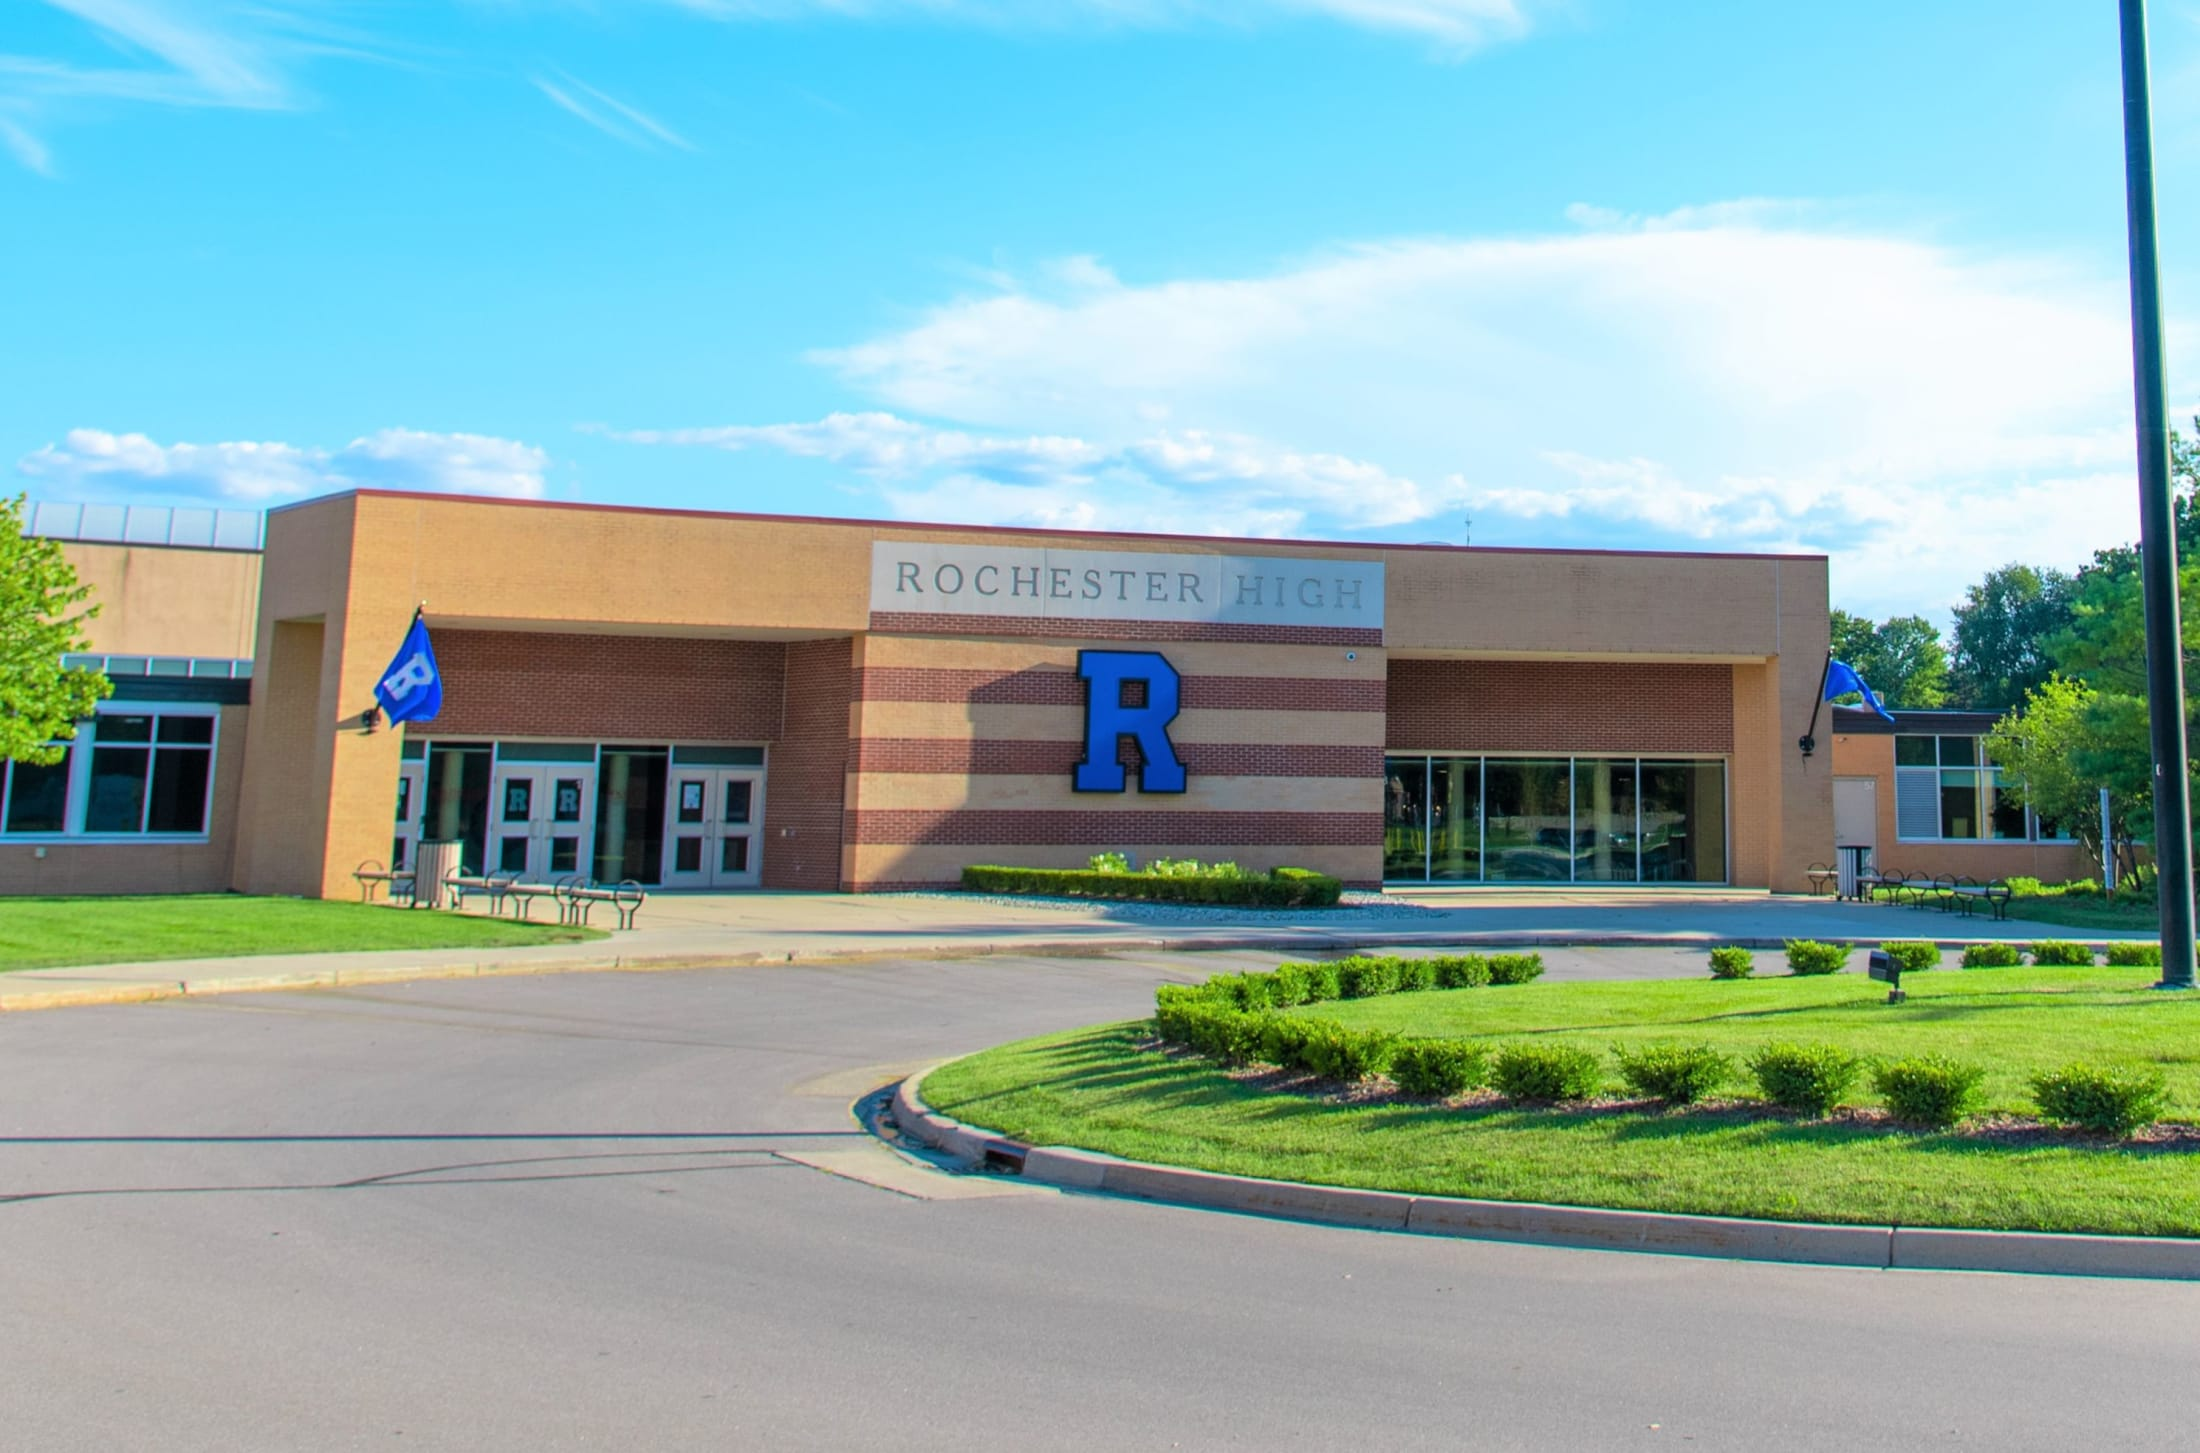 Rochester High School Front Entrance